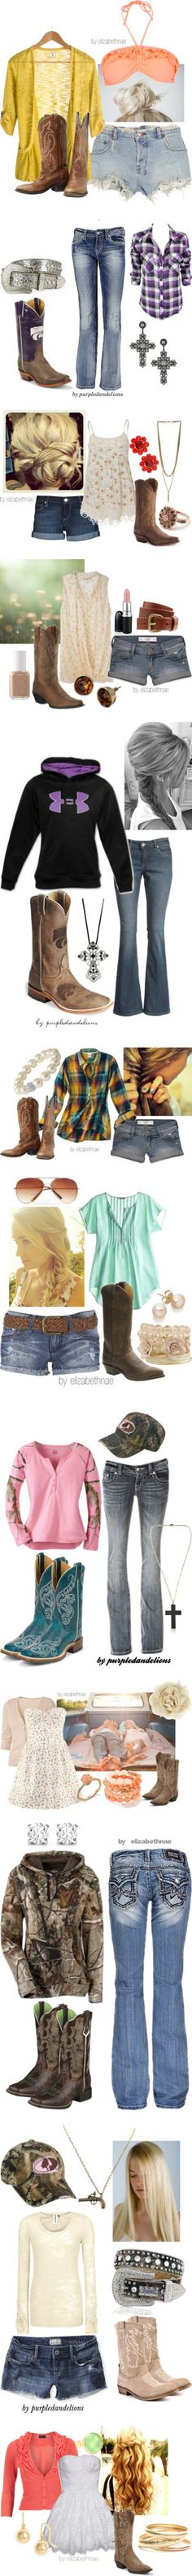 this is perfect. oh my goodness. from country concerts, to everyday college life to going out. summertime hurry up